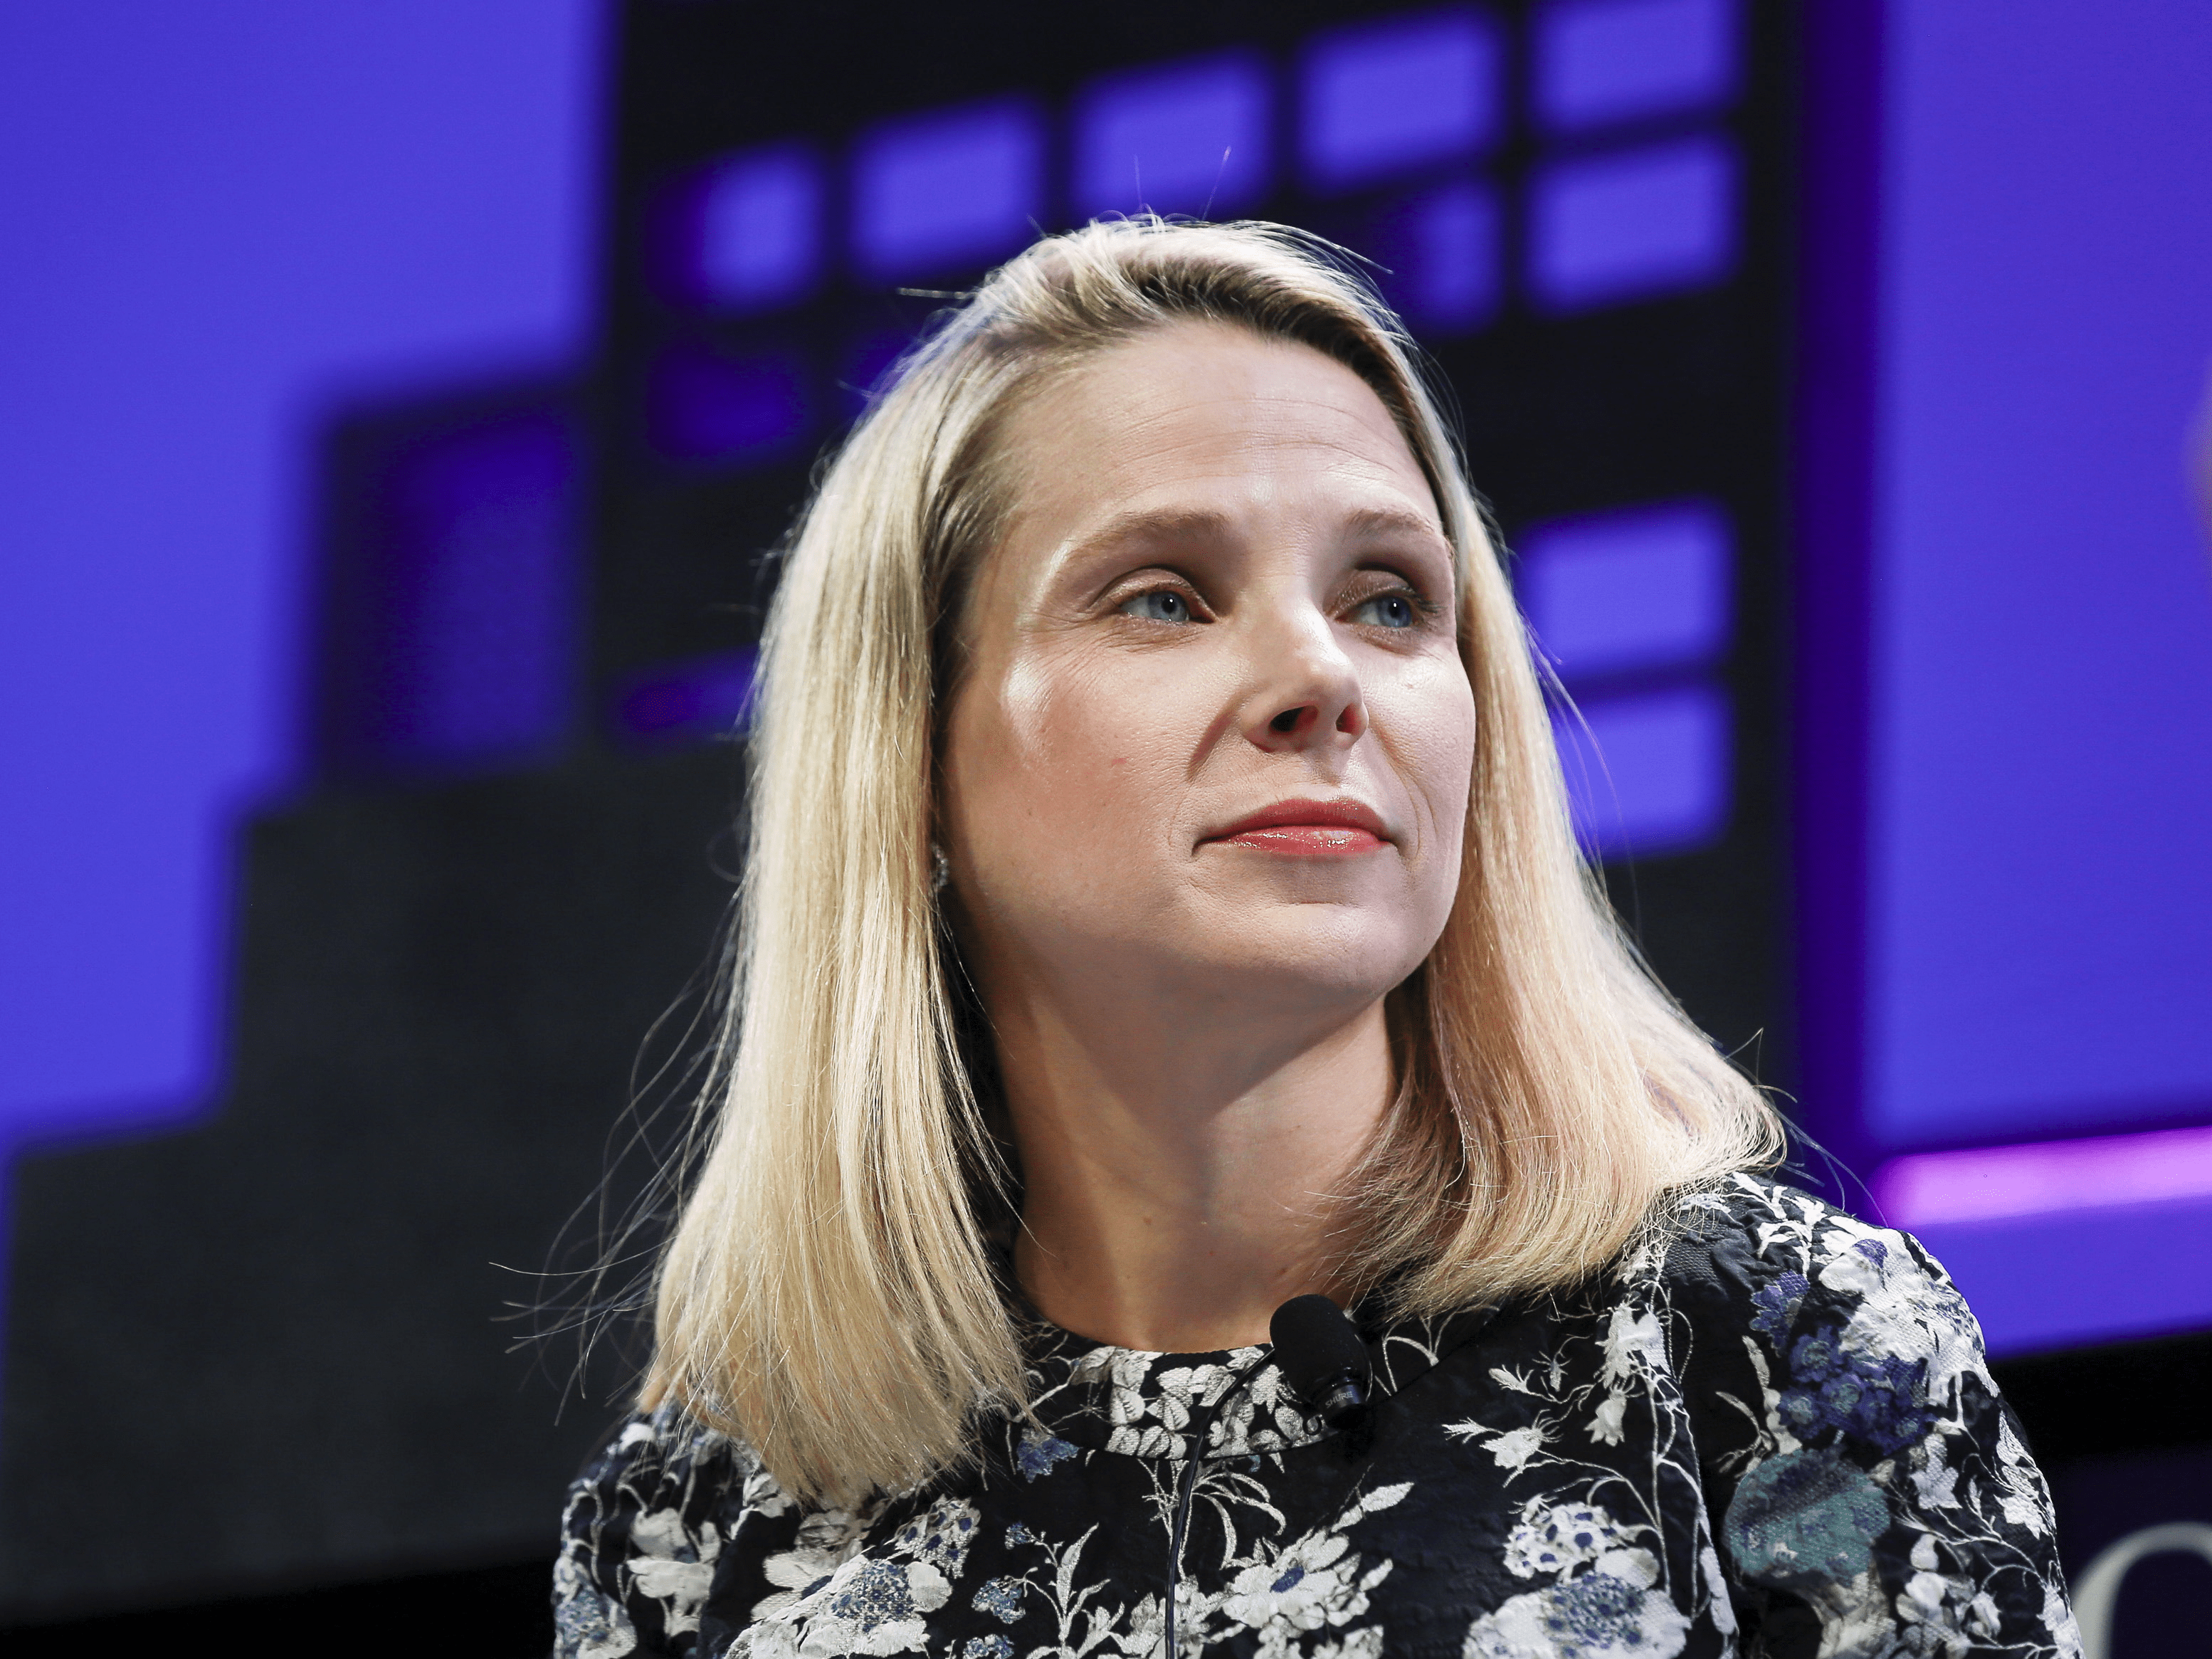 September: Yahoo confirms the hacking of at least 500 million user accounts.